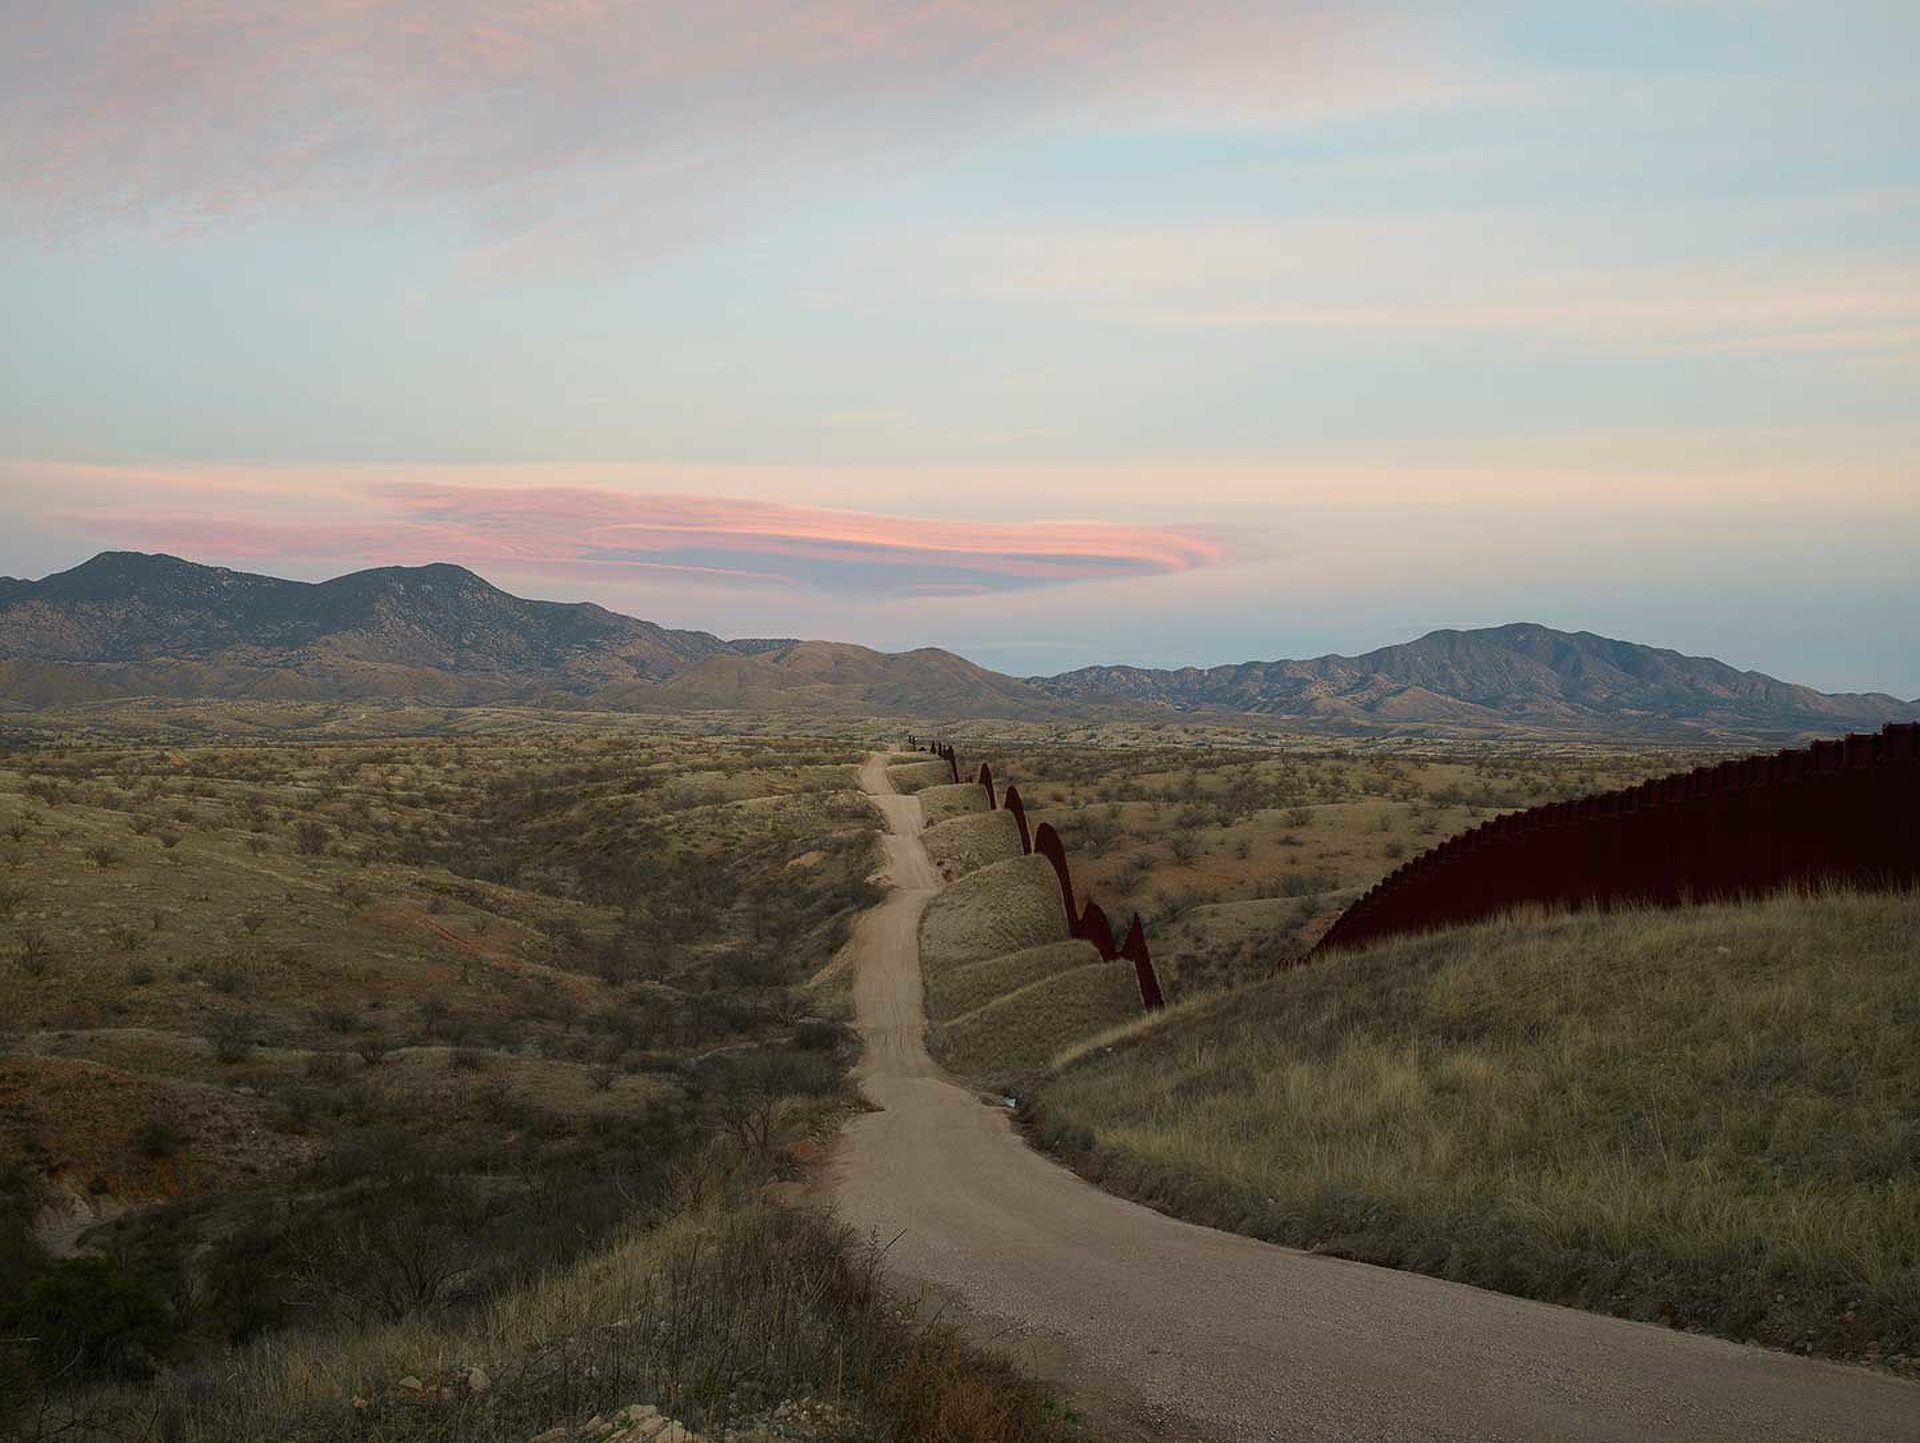 Richard Misrach: Border Cantos